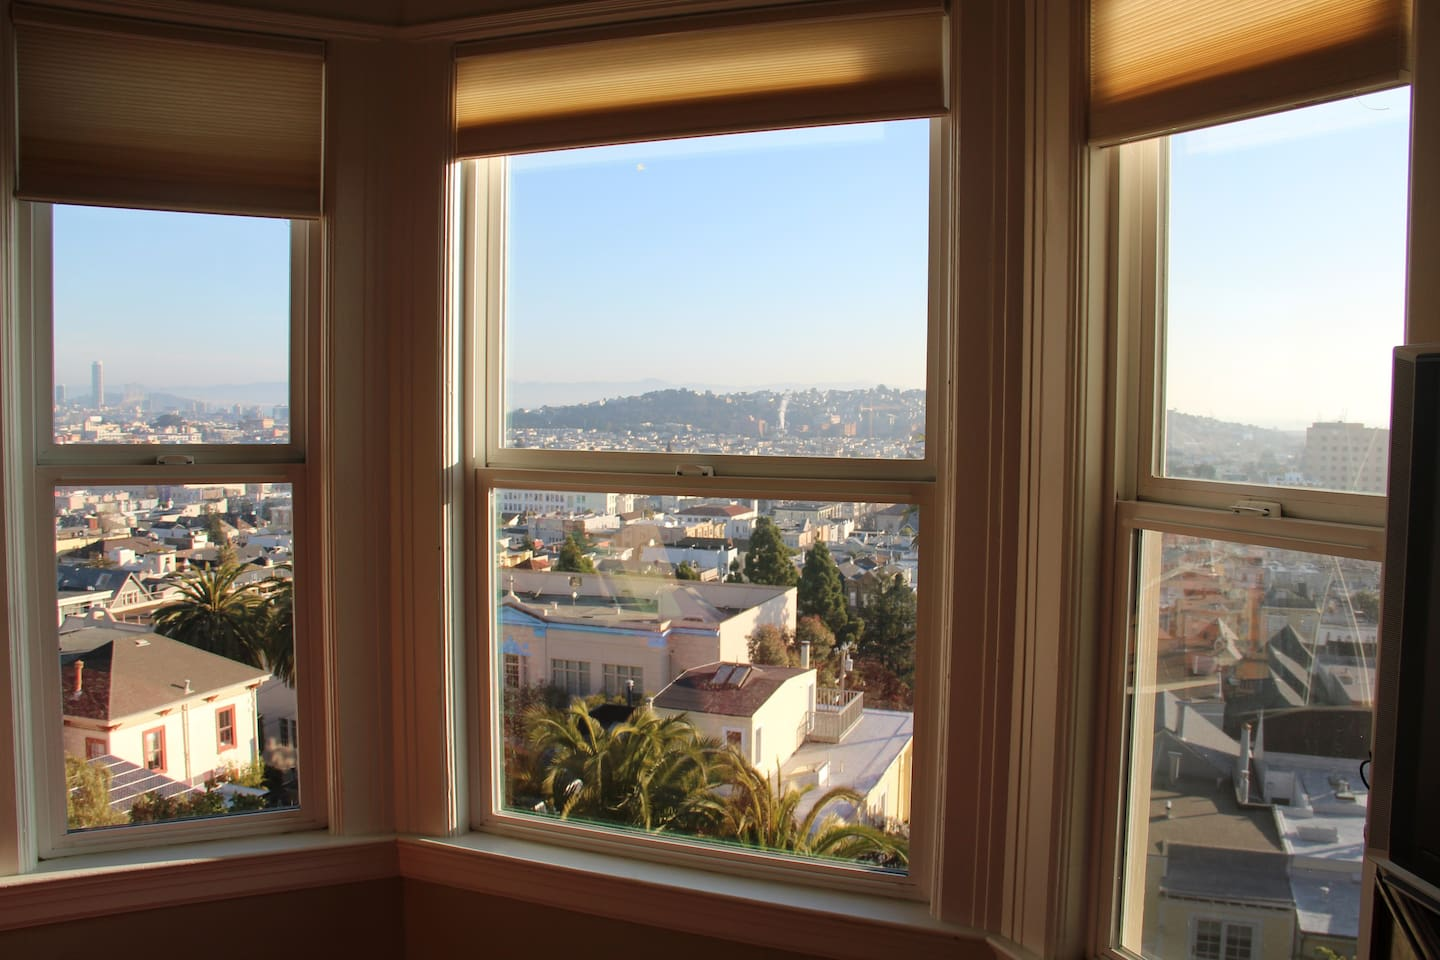 View from the bay windows eastward towards downtown, AT&T Park, San Francisco Bay, East Bay and Potrero Hill